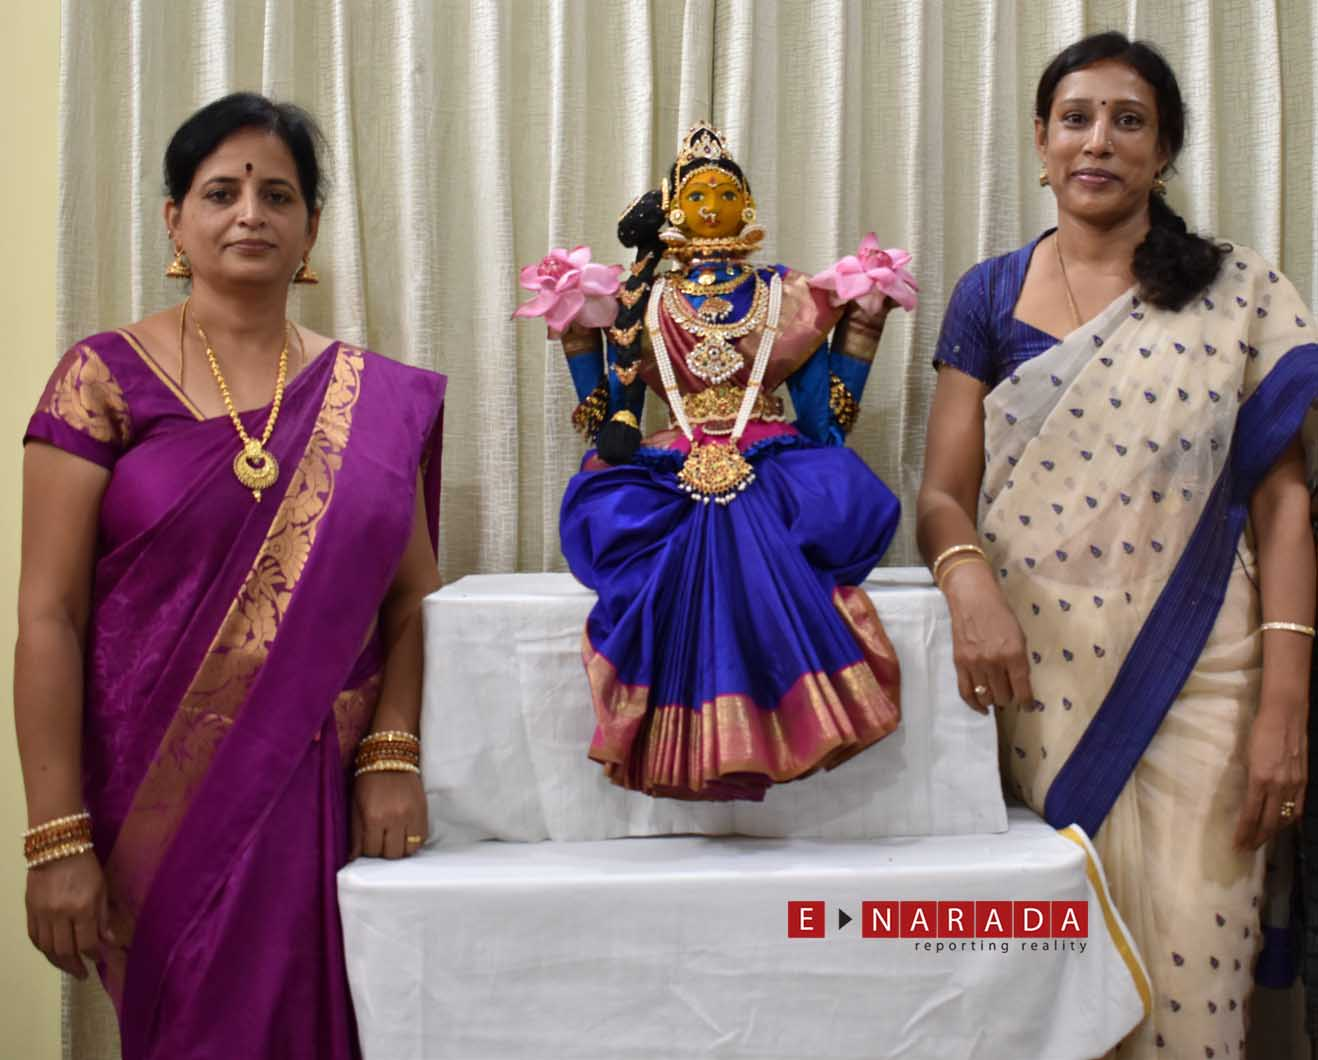 2 Bengalureans show how to drape a saree for Goddess. Video goes viral, garners 50k views on day one itself